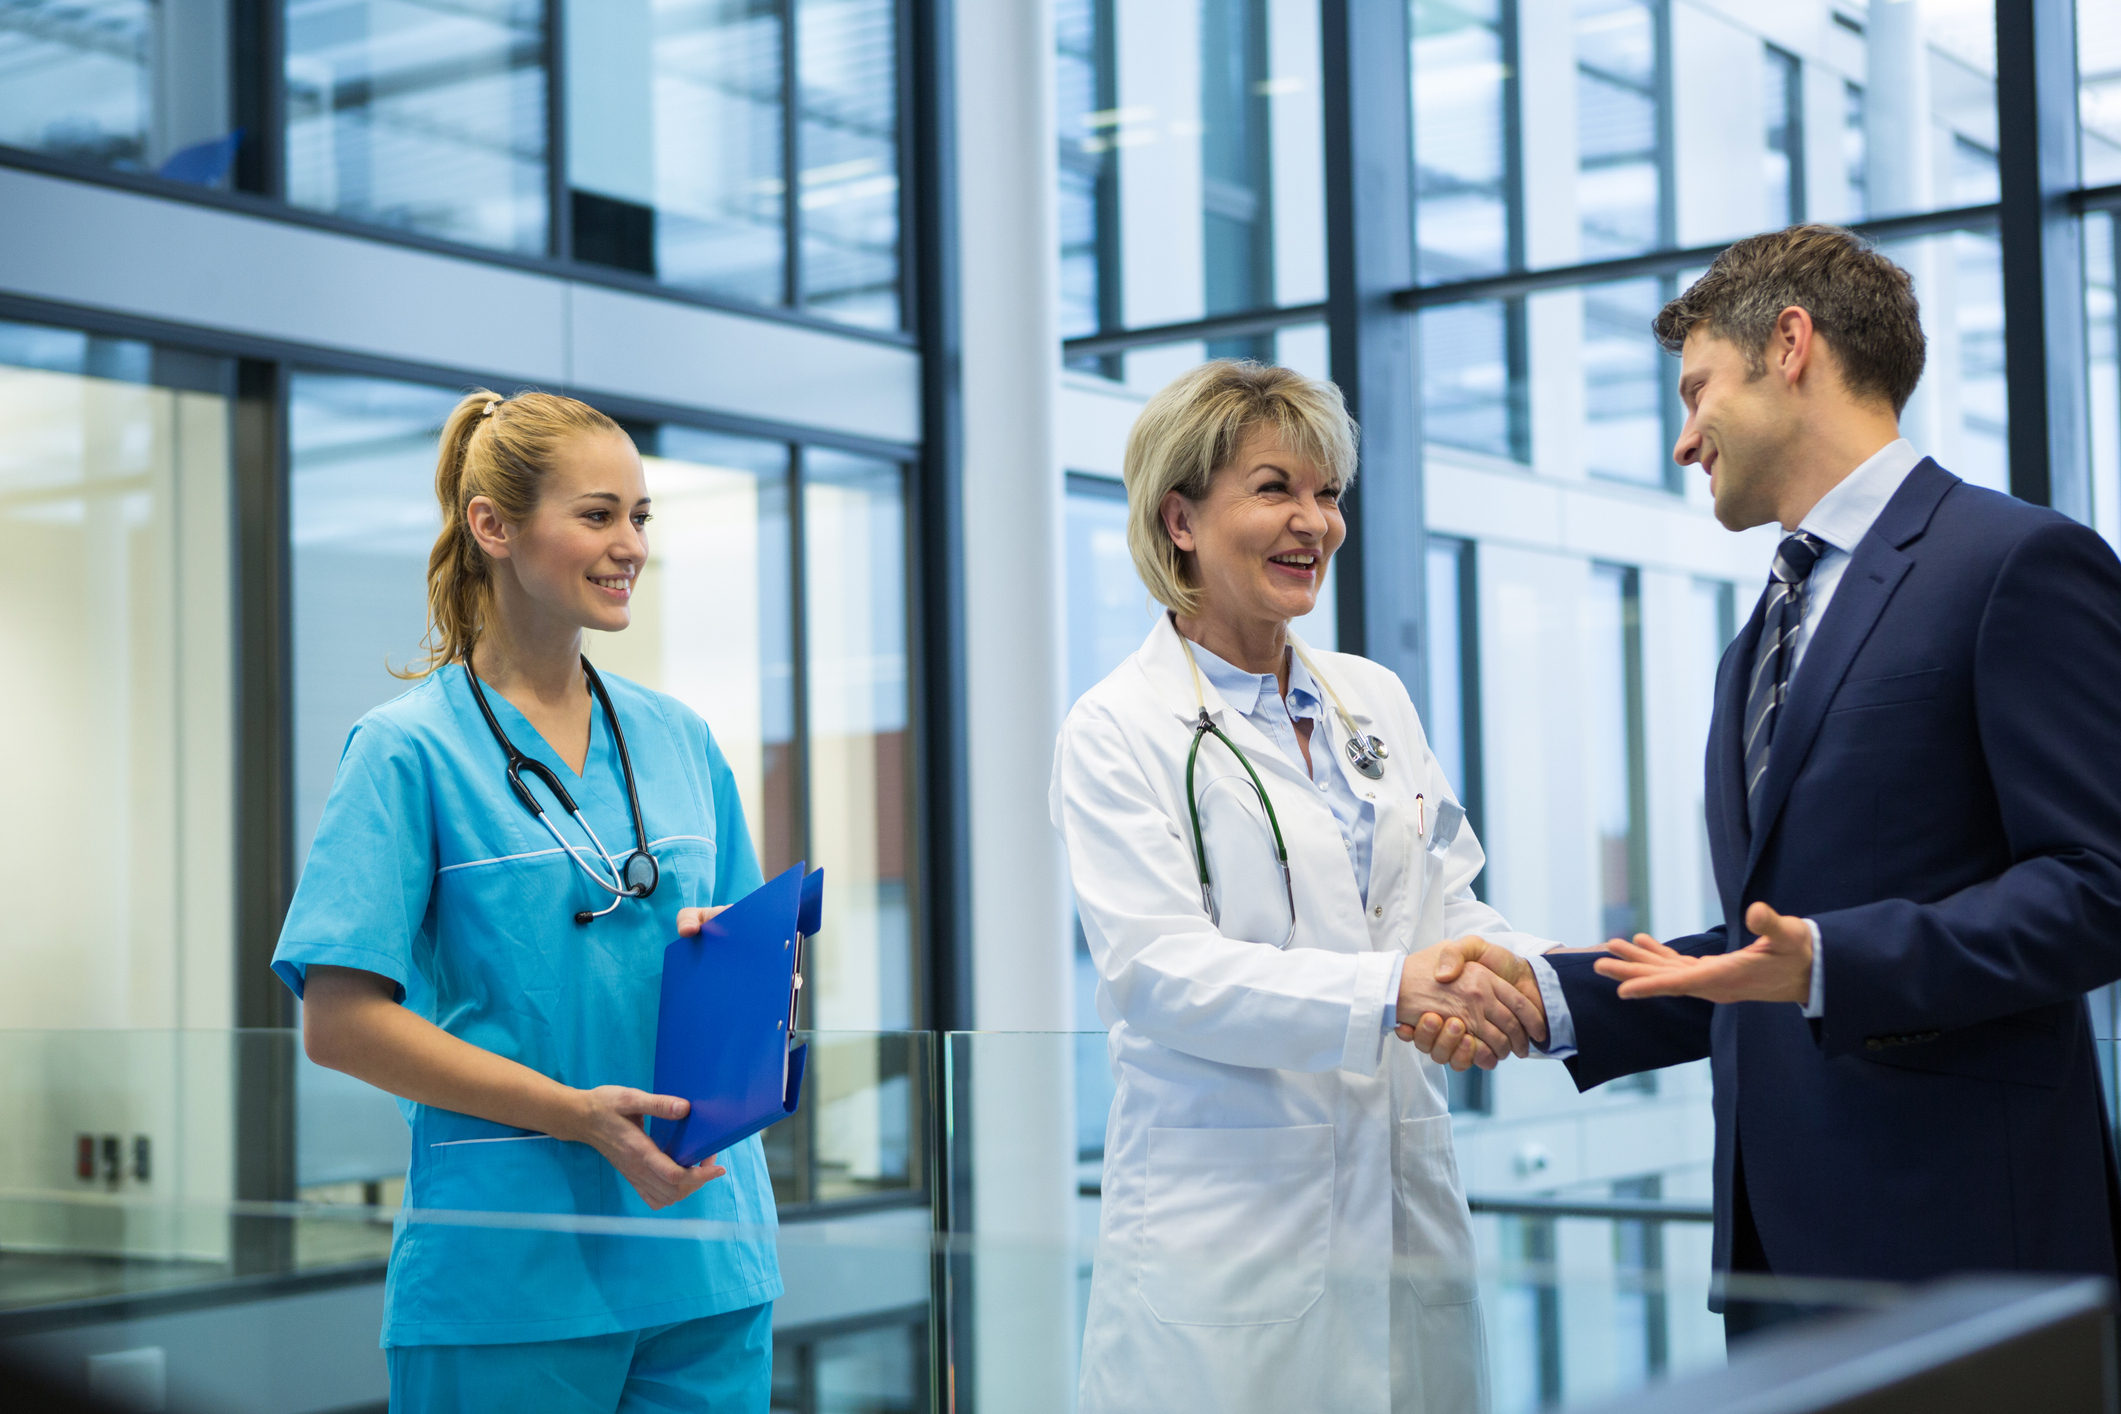 Female doctor providing physician coverage is shaking hands with businessman as healthcare worker in scrubs looks on.